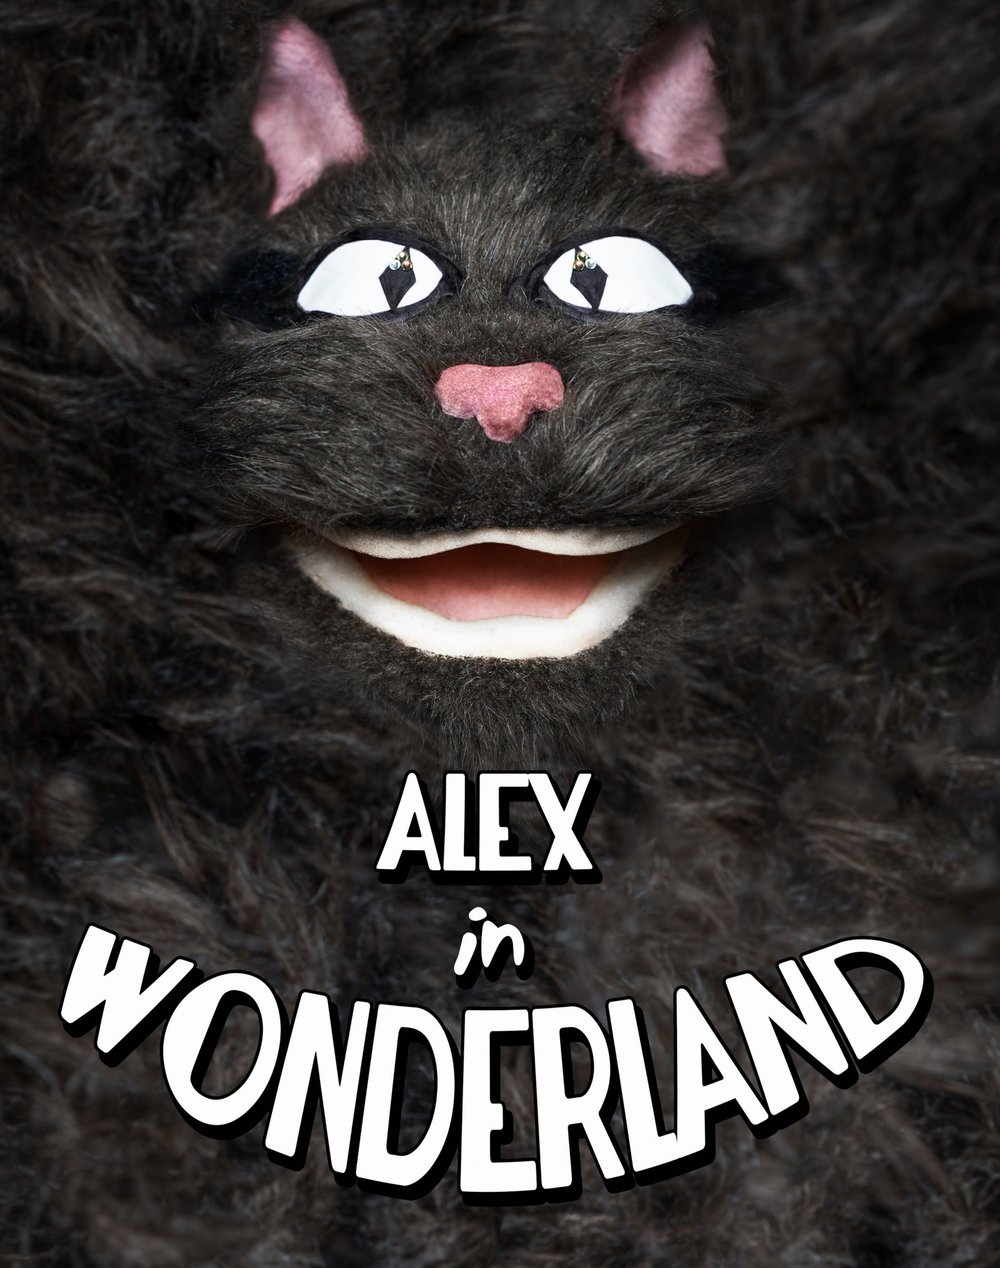 Alex in wonderland - Now closed. Thank you for coming!Alex escapes to Wonderland looking for adventure, attention and answers. What Alex finds is a frivolous world peopled with creatures of nonsense. Can Alex find a voice and place in the real world while journeying through a land of madness?This beautifully crafted play features the well-known absurdity of Lewis Carroll's classic interpreted through delightful costumes, elaborate shadow play and whimsical puppets of various styles.Recommended for ages 5 and up: *this is a sit-quietly show that's an hour long, and includes loud voices, moments of darkness and sudden surprises*